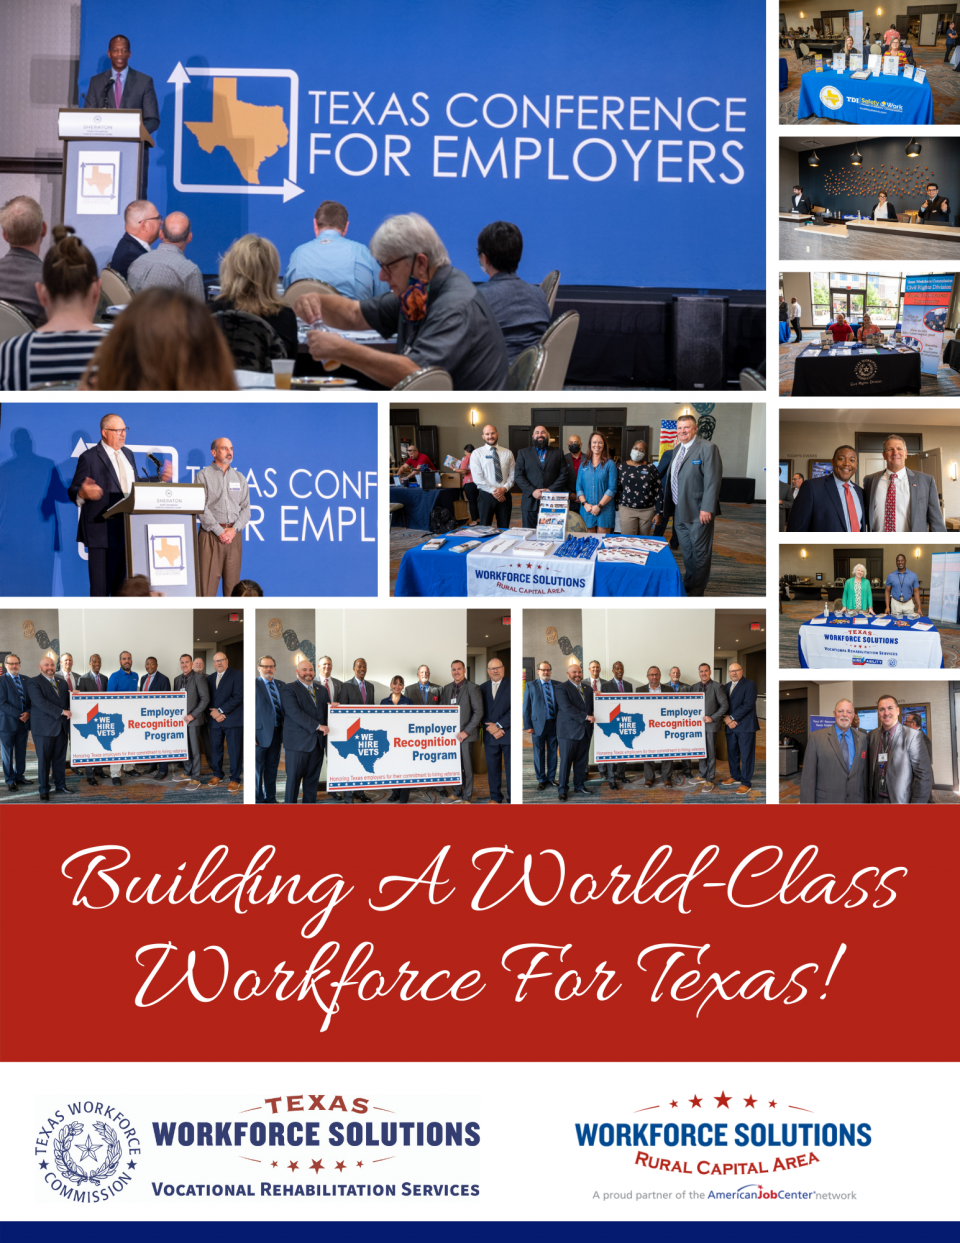 WSRCA Welcomes Texas Conference for Employers to Georgetown